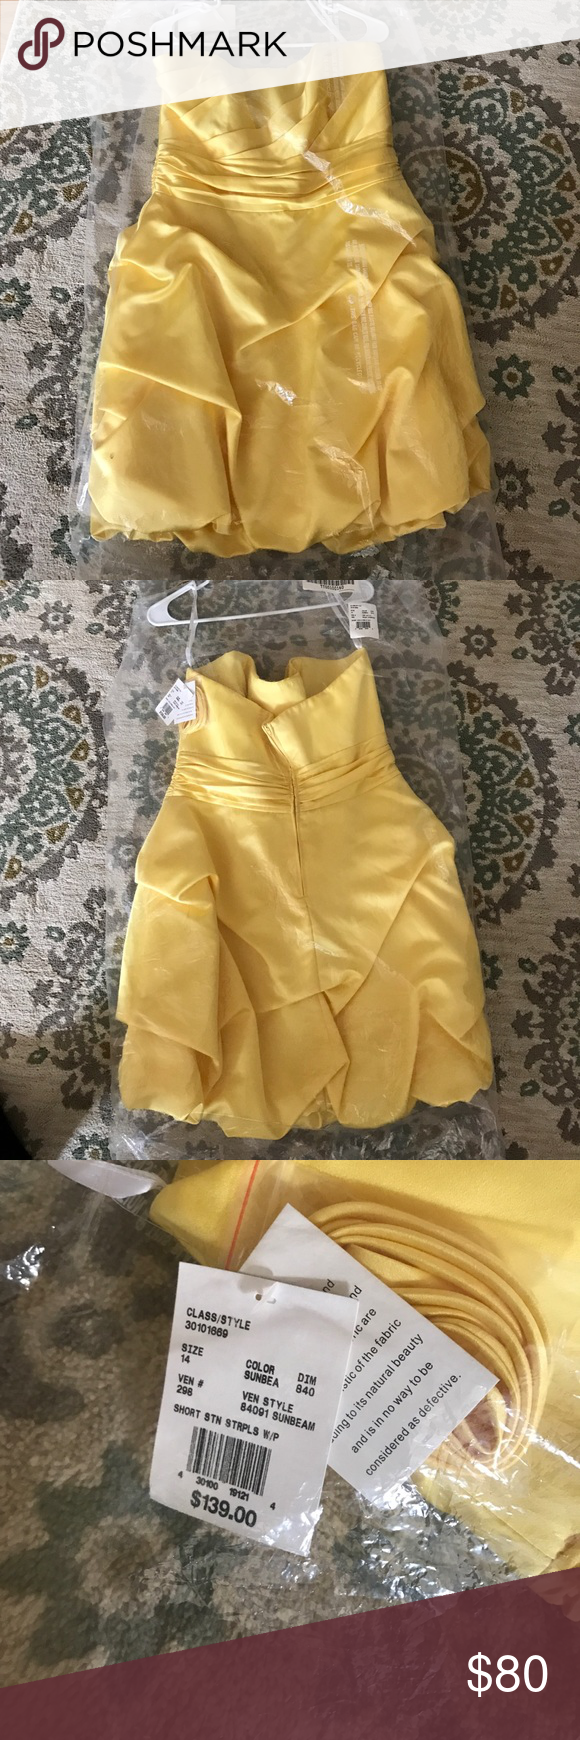 Dress from davids bridal nwt shorts customer support and delivery